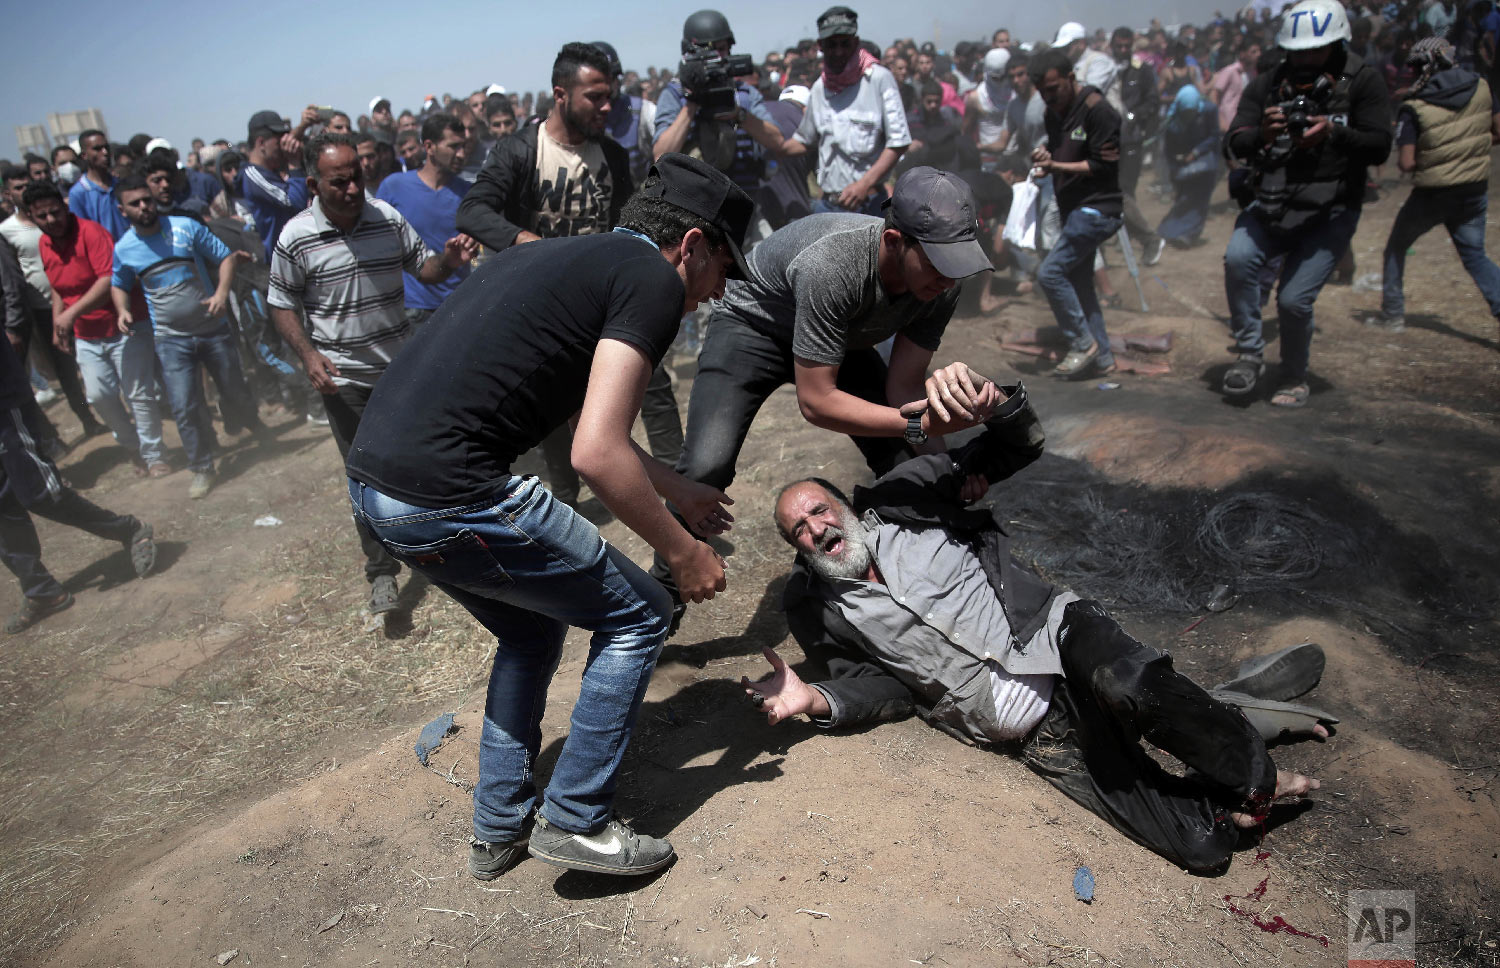 An elderly Palestinian man falls on the ground after being shot by Israeli troops during a deadly protest at the Gaza Strip's border with Israel, east of Khan Younis, Gaza Strip, May 14, 2018. (AP Photo/Khalil Hamra)